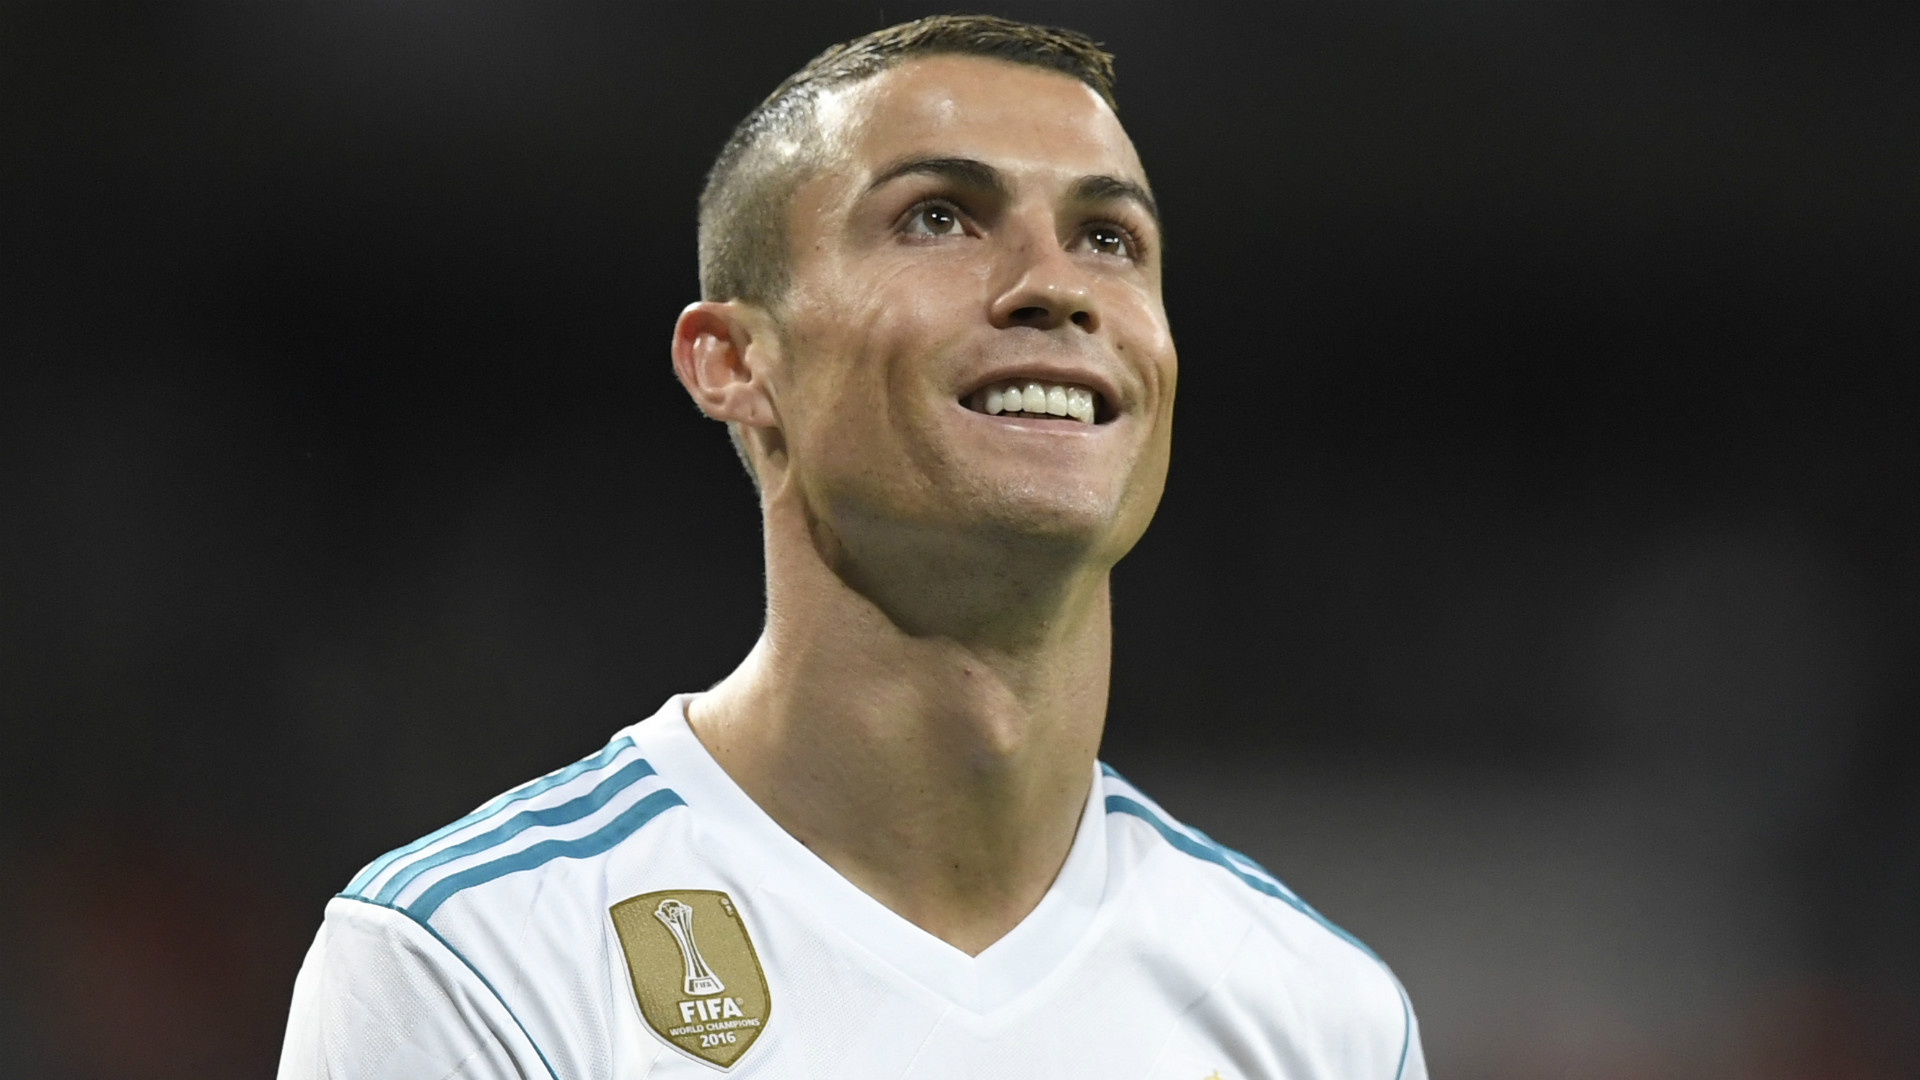 'Ronaldo winning Ballon d'Or is good for Real Madrid' - Nacho hoping for fifth triumph